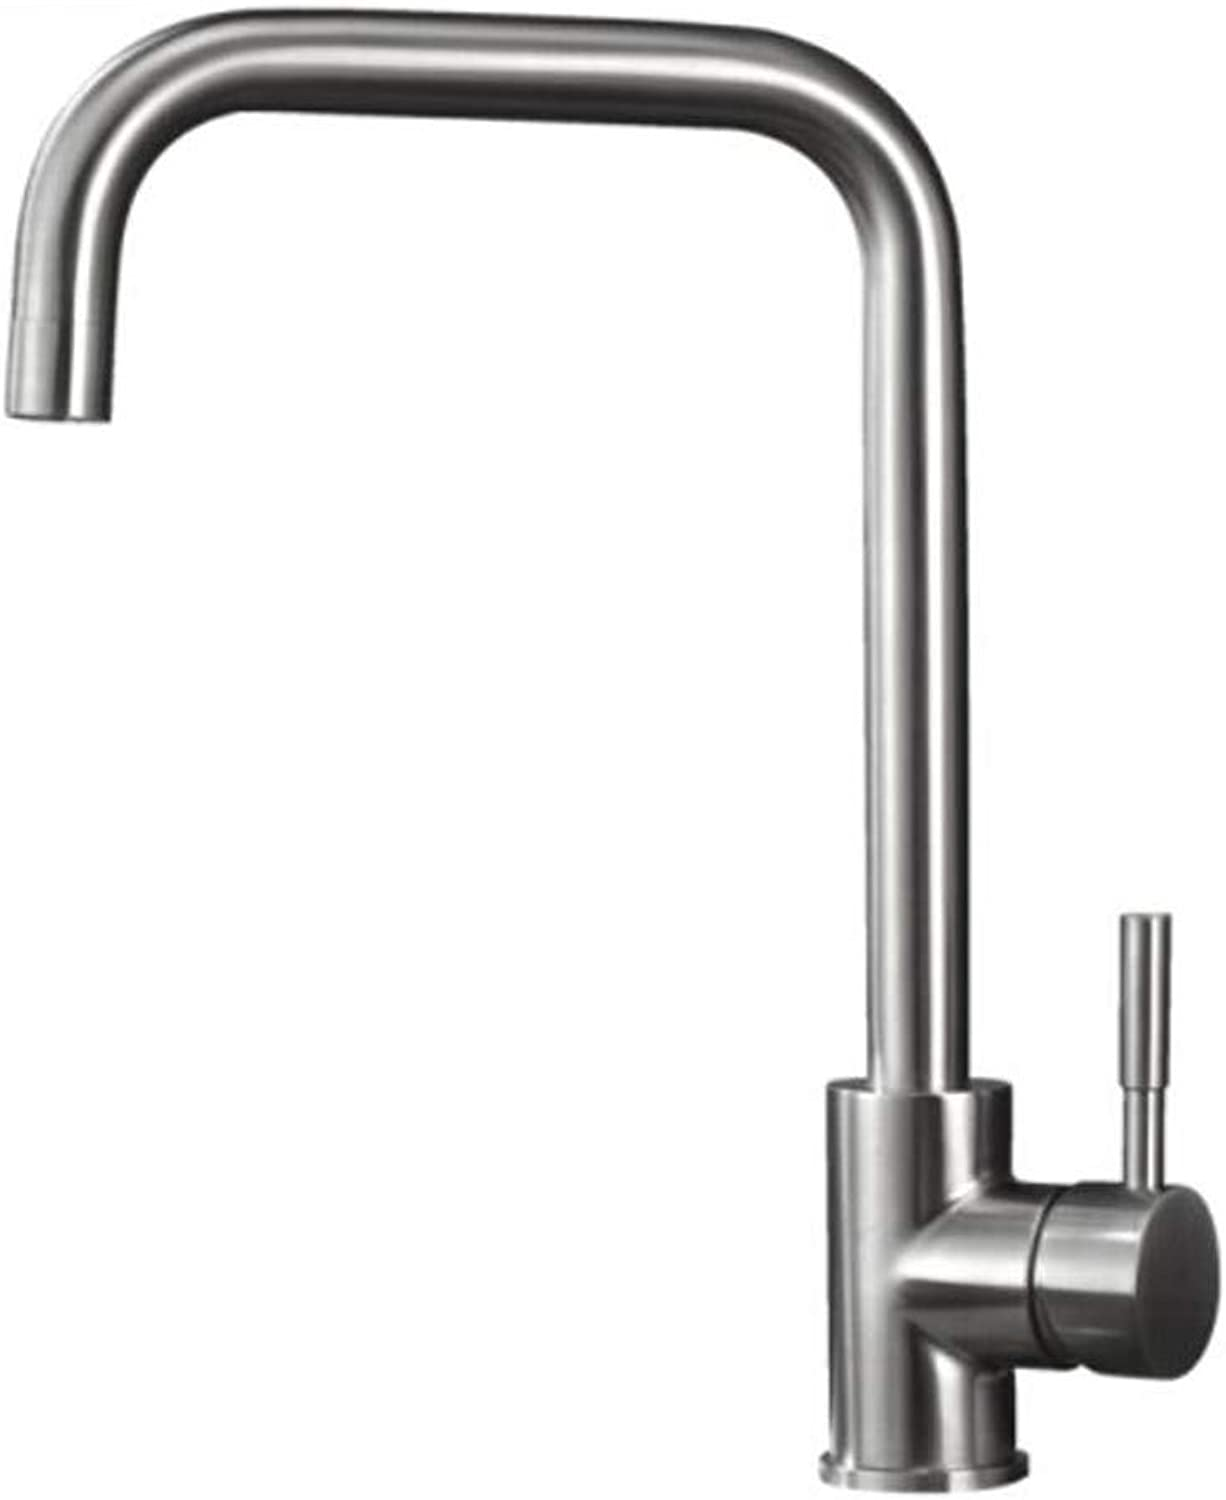 Taps Mixer?Swivel?Faucet Sink Bathroom Faucet Cold and Hot Kitchen Washbasin 304 Stainless Steel Lead-Free Sink Faucet Single Hole